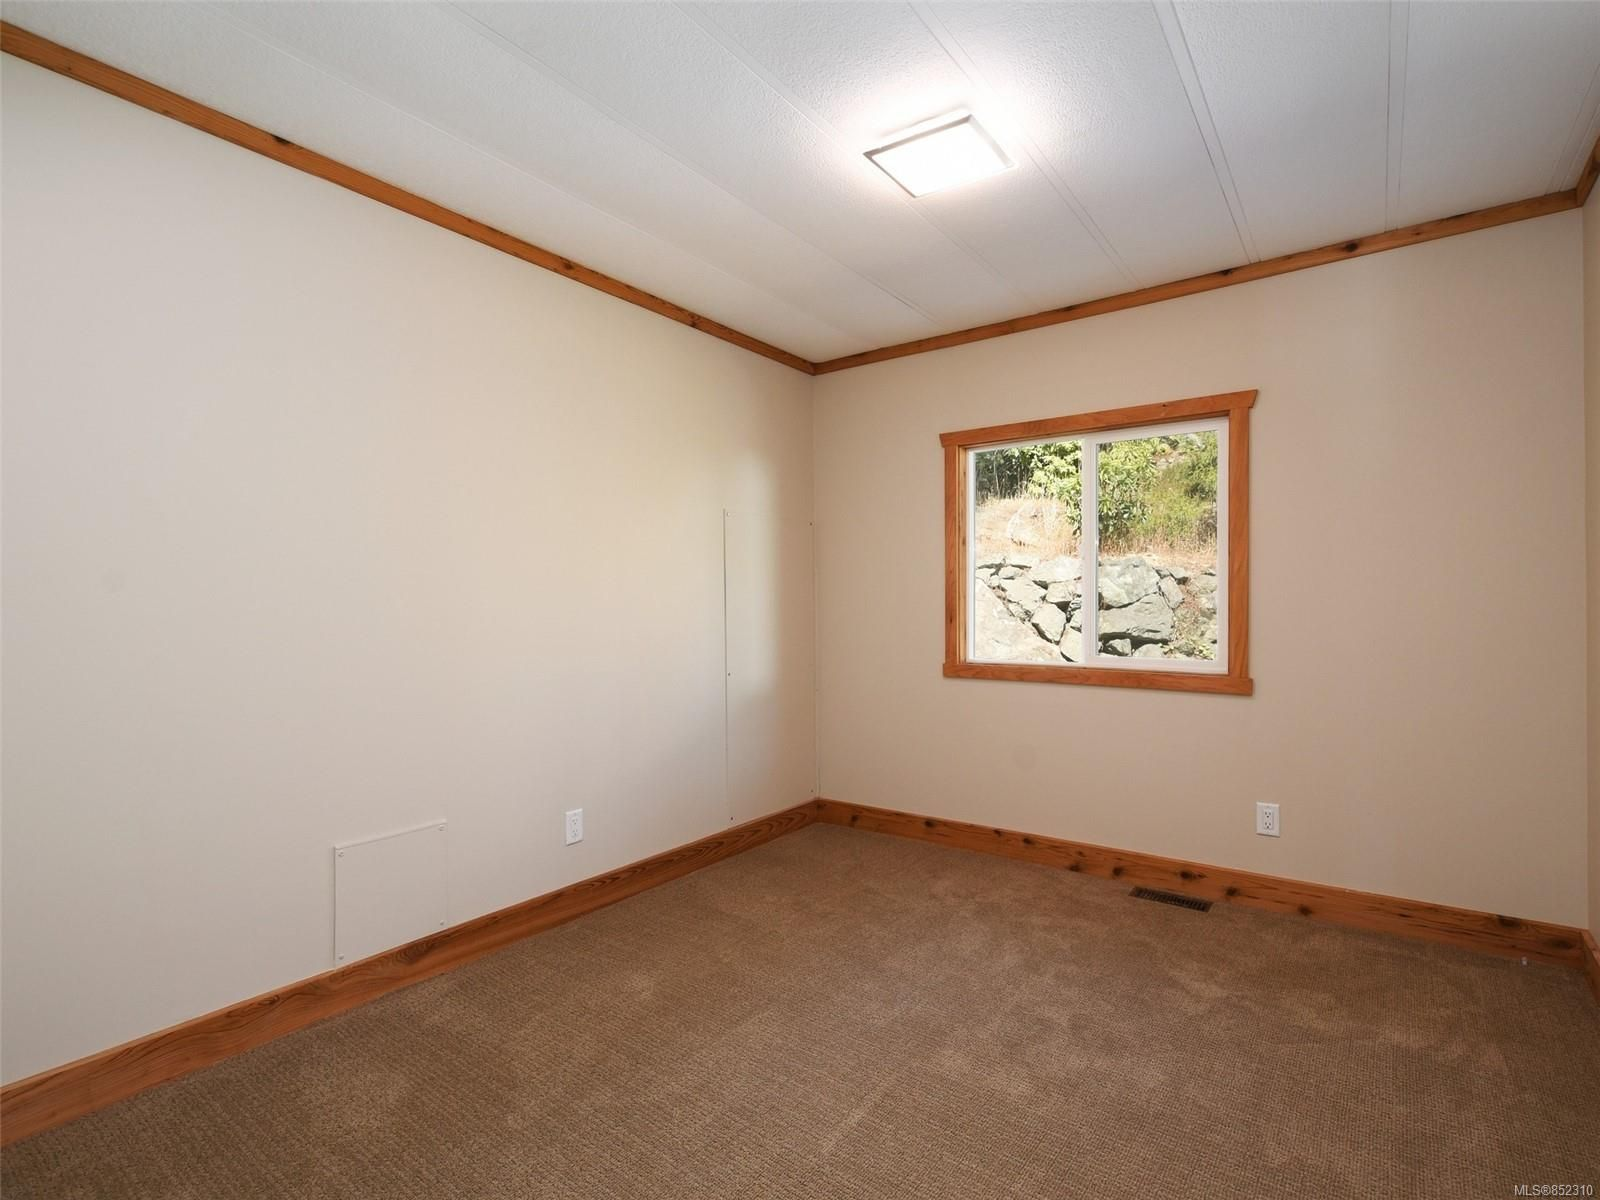 Photo 15: Photos: 94 5838 Blythwood Rd in : Sk Saseenos Manufactured Home for sale (Sooke)  : MLS®# 852310